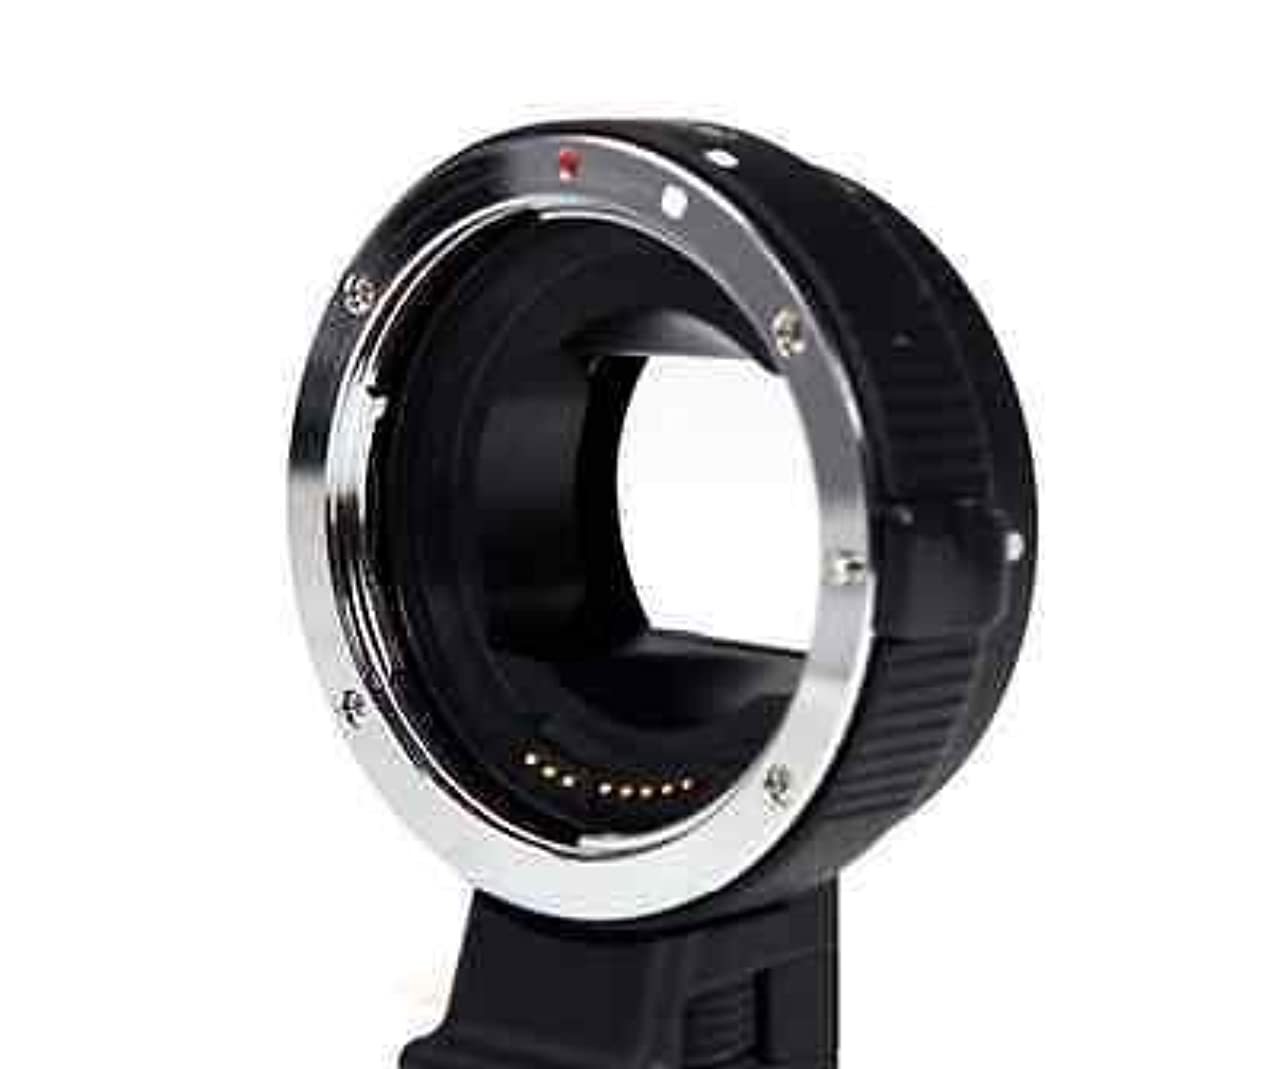 FidgetGear Auto Focus EF-NEX Adapter for EF EF-S Lens to NEX E Mount A7 A7R